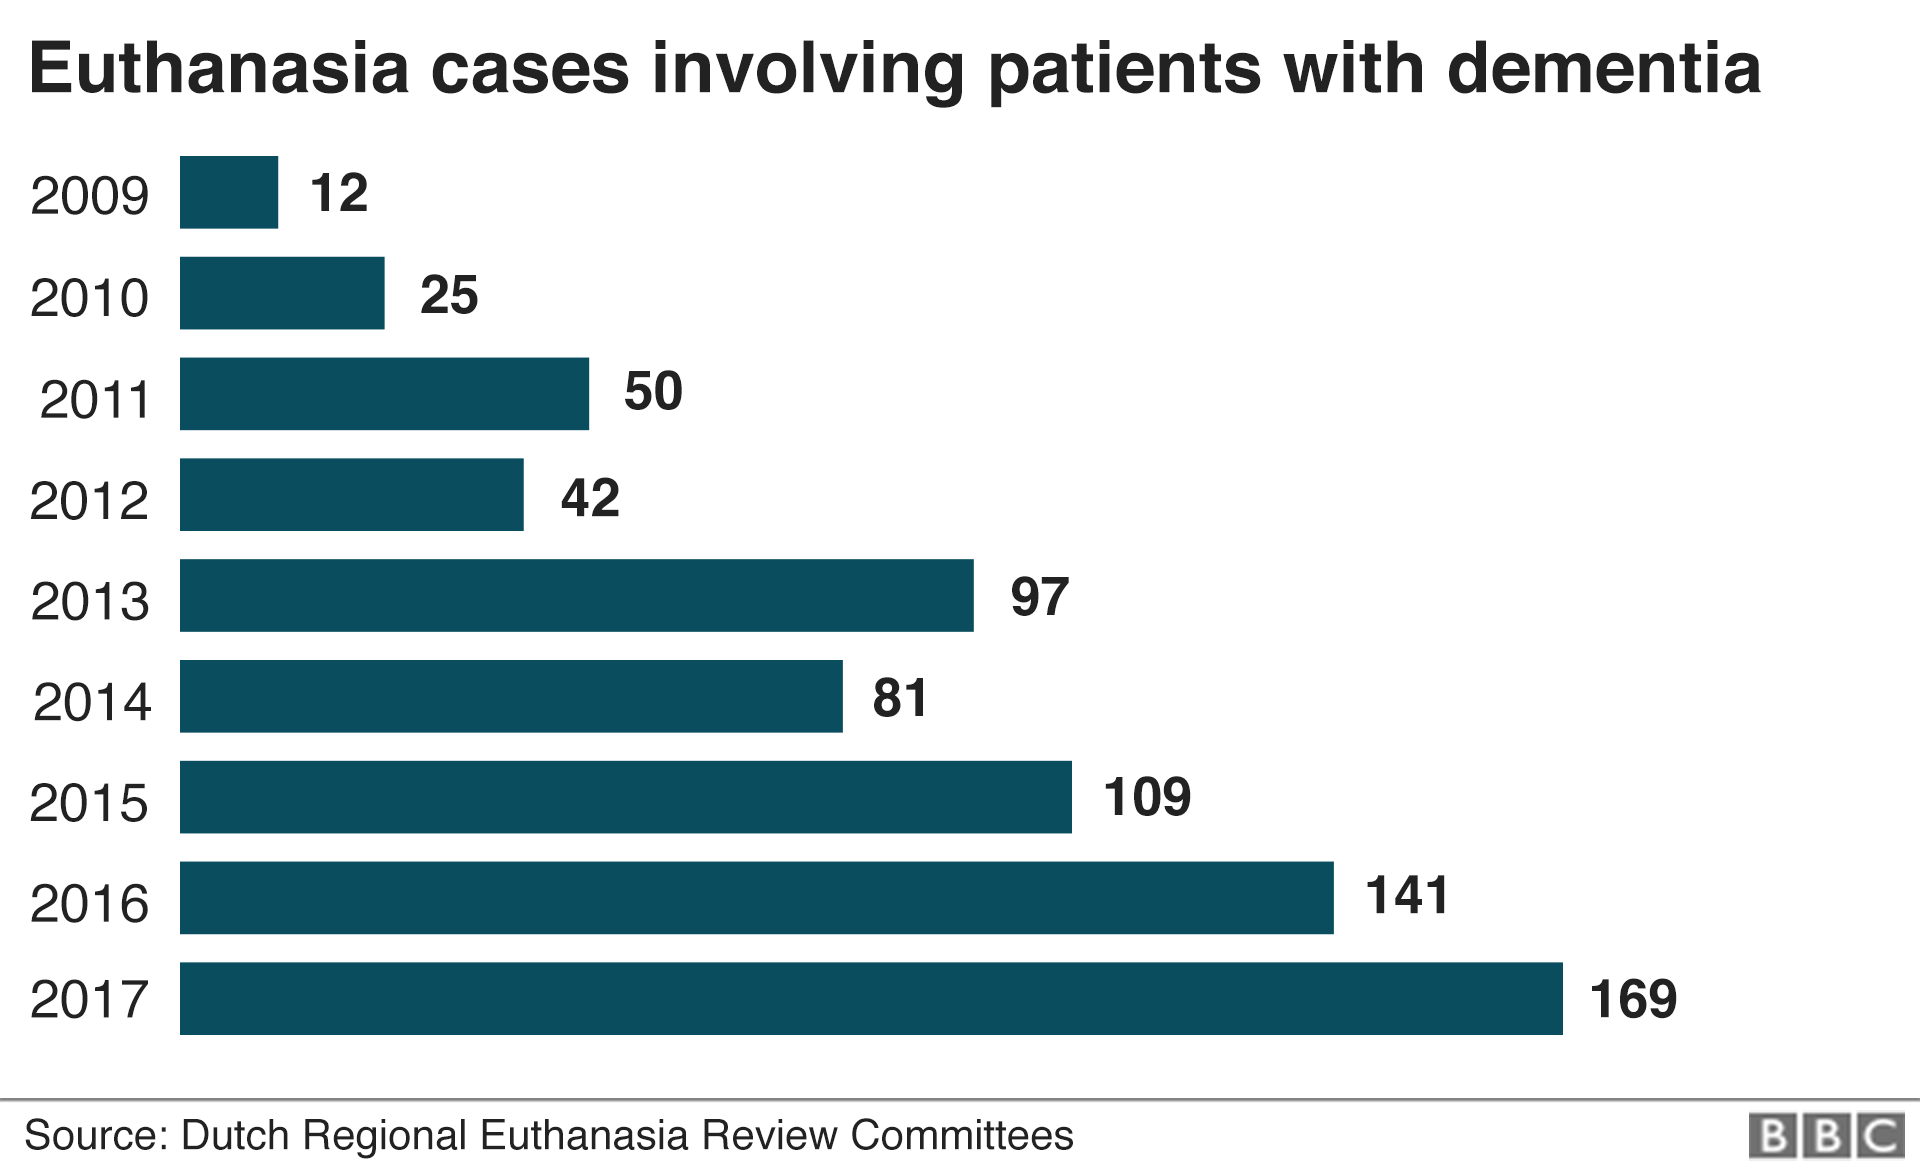 Bar chart showing euthanasia cases involving dementia patients since 2009